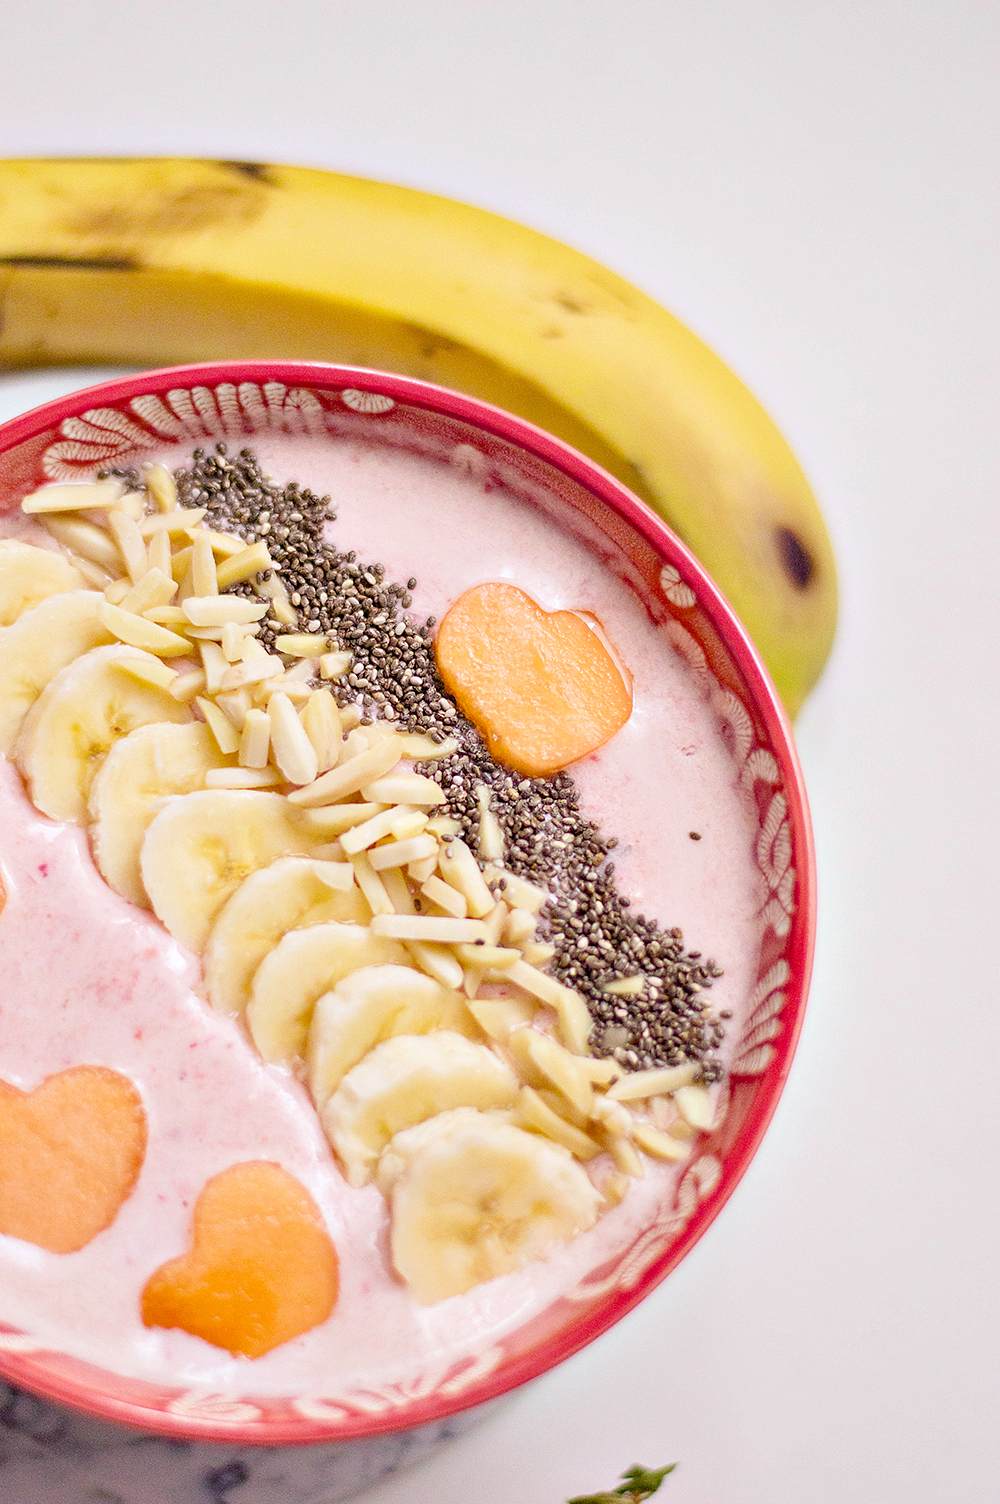 Using your cookie cutter, cut out hearts from your cantaloupe. Place carefully on top of your smoothie bowl.